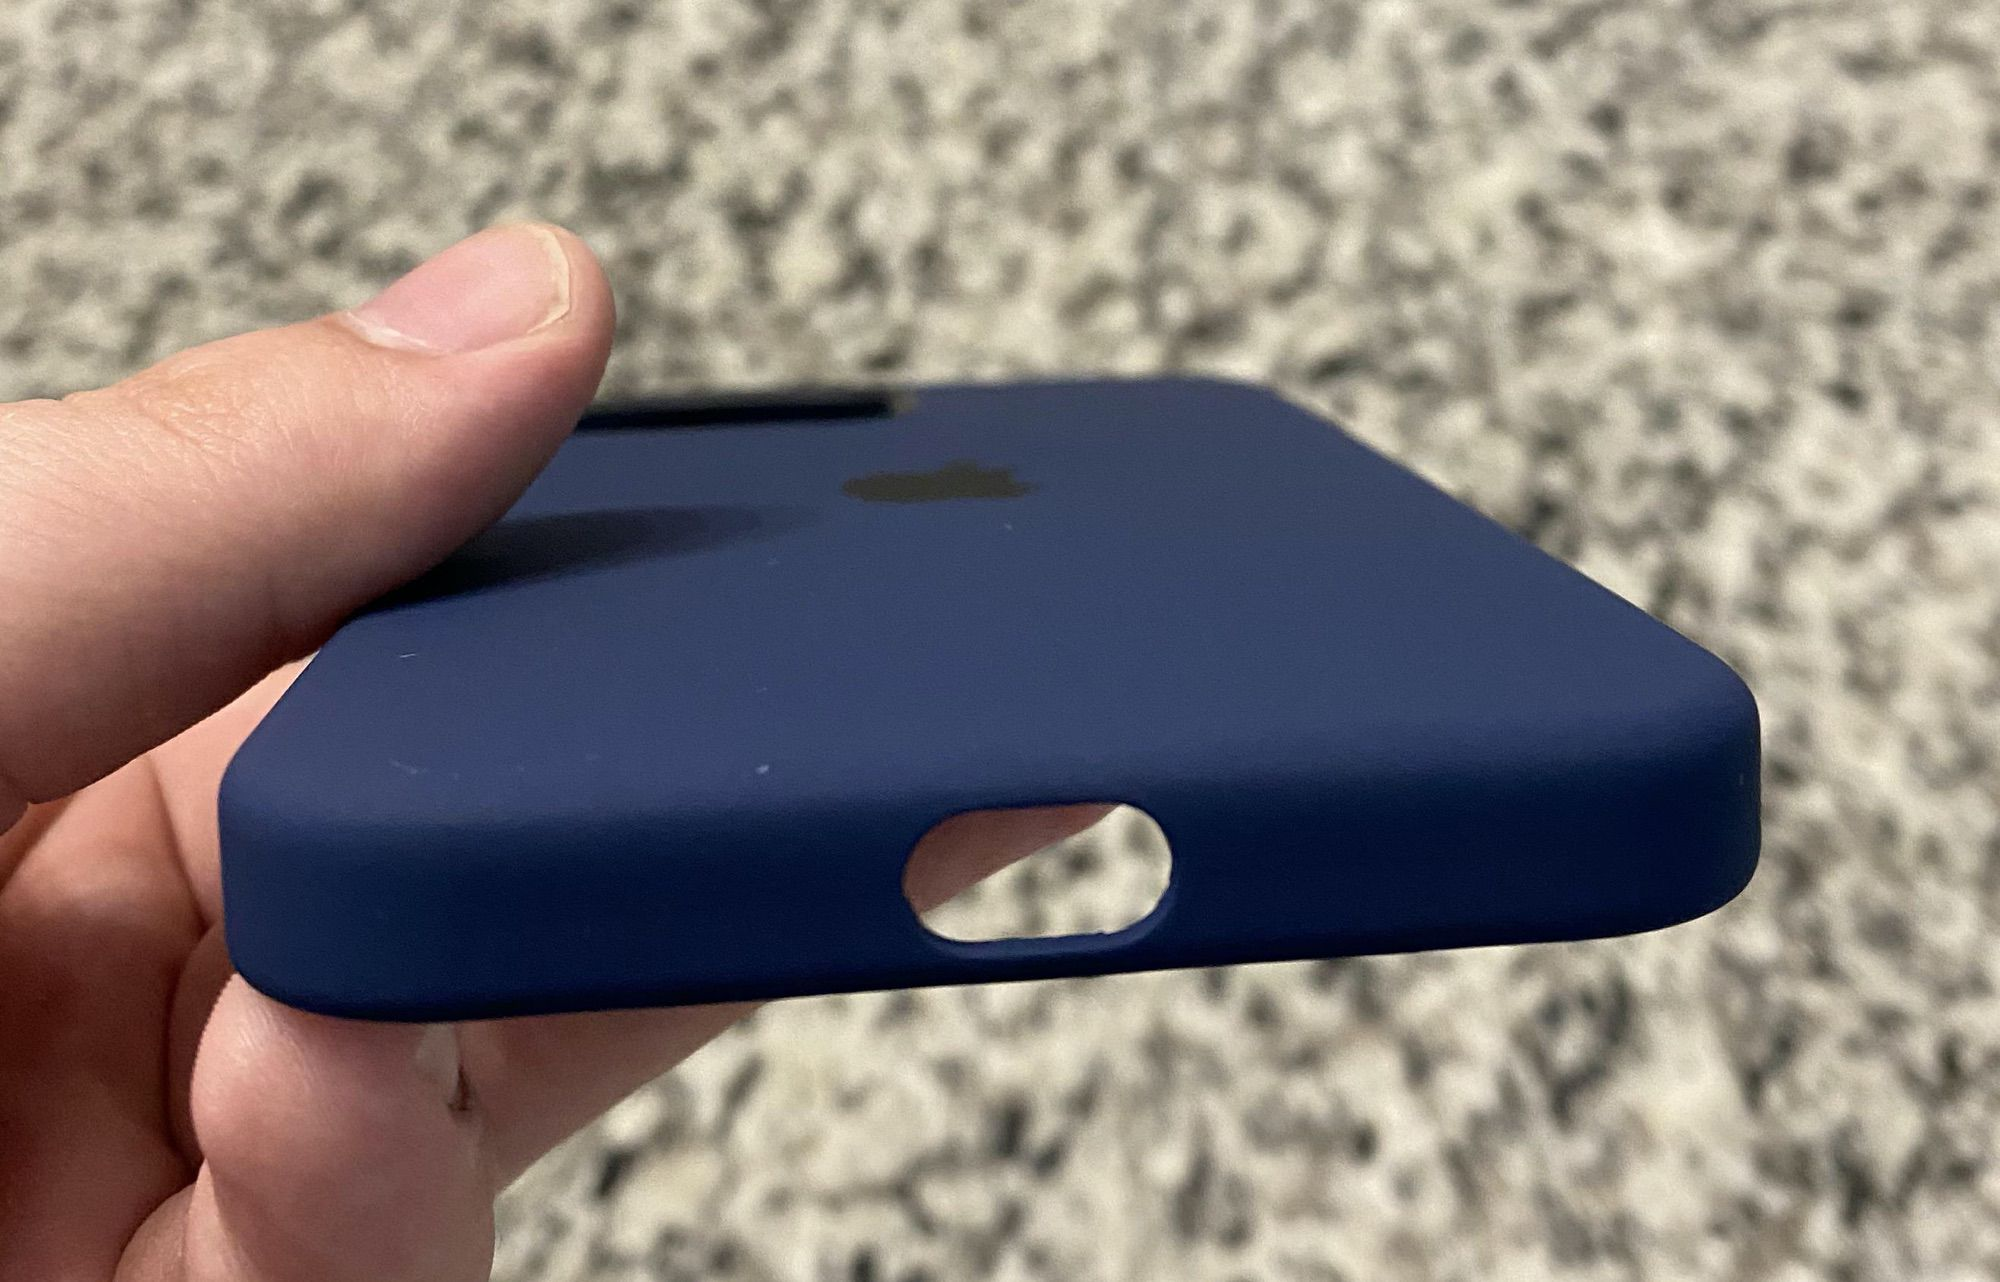 Some Defective Apple iPhone 12 Cases Shipping Without Speaker Holes